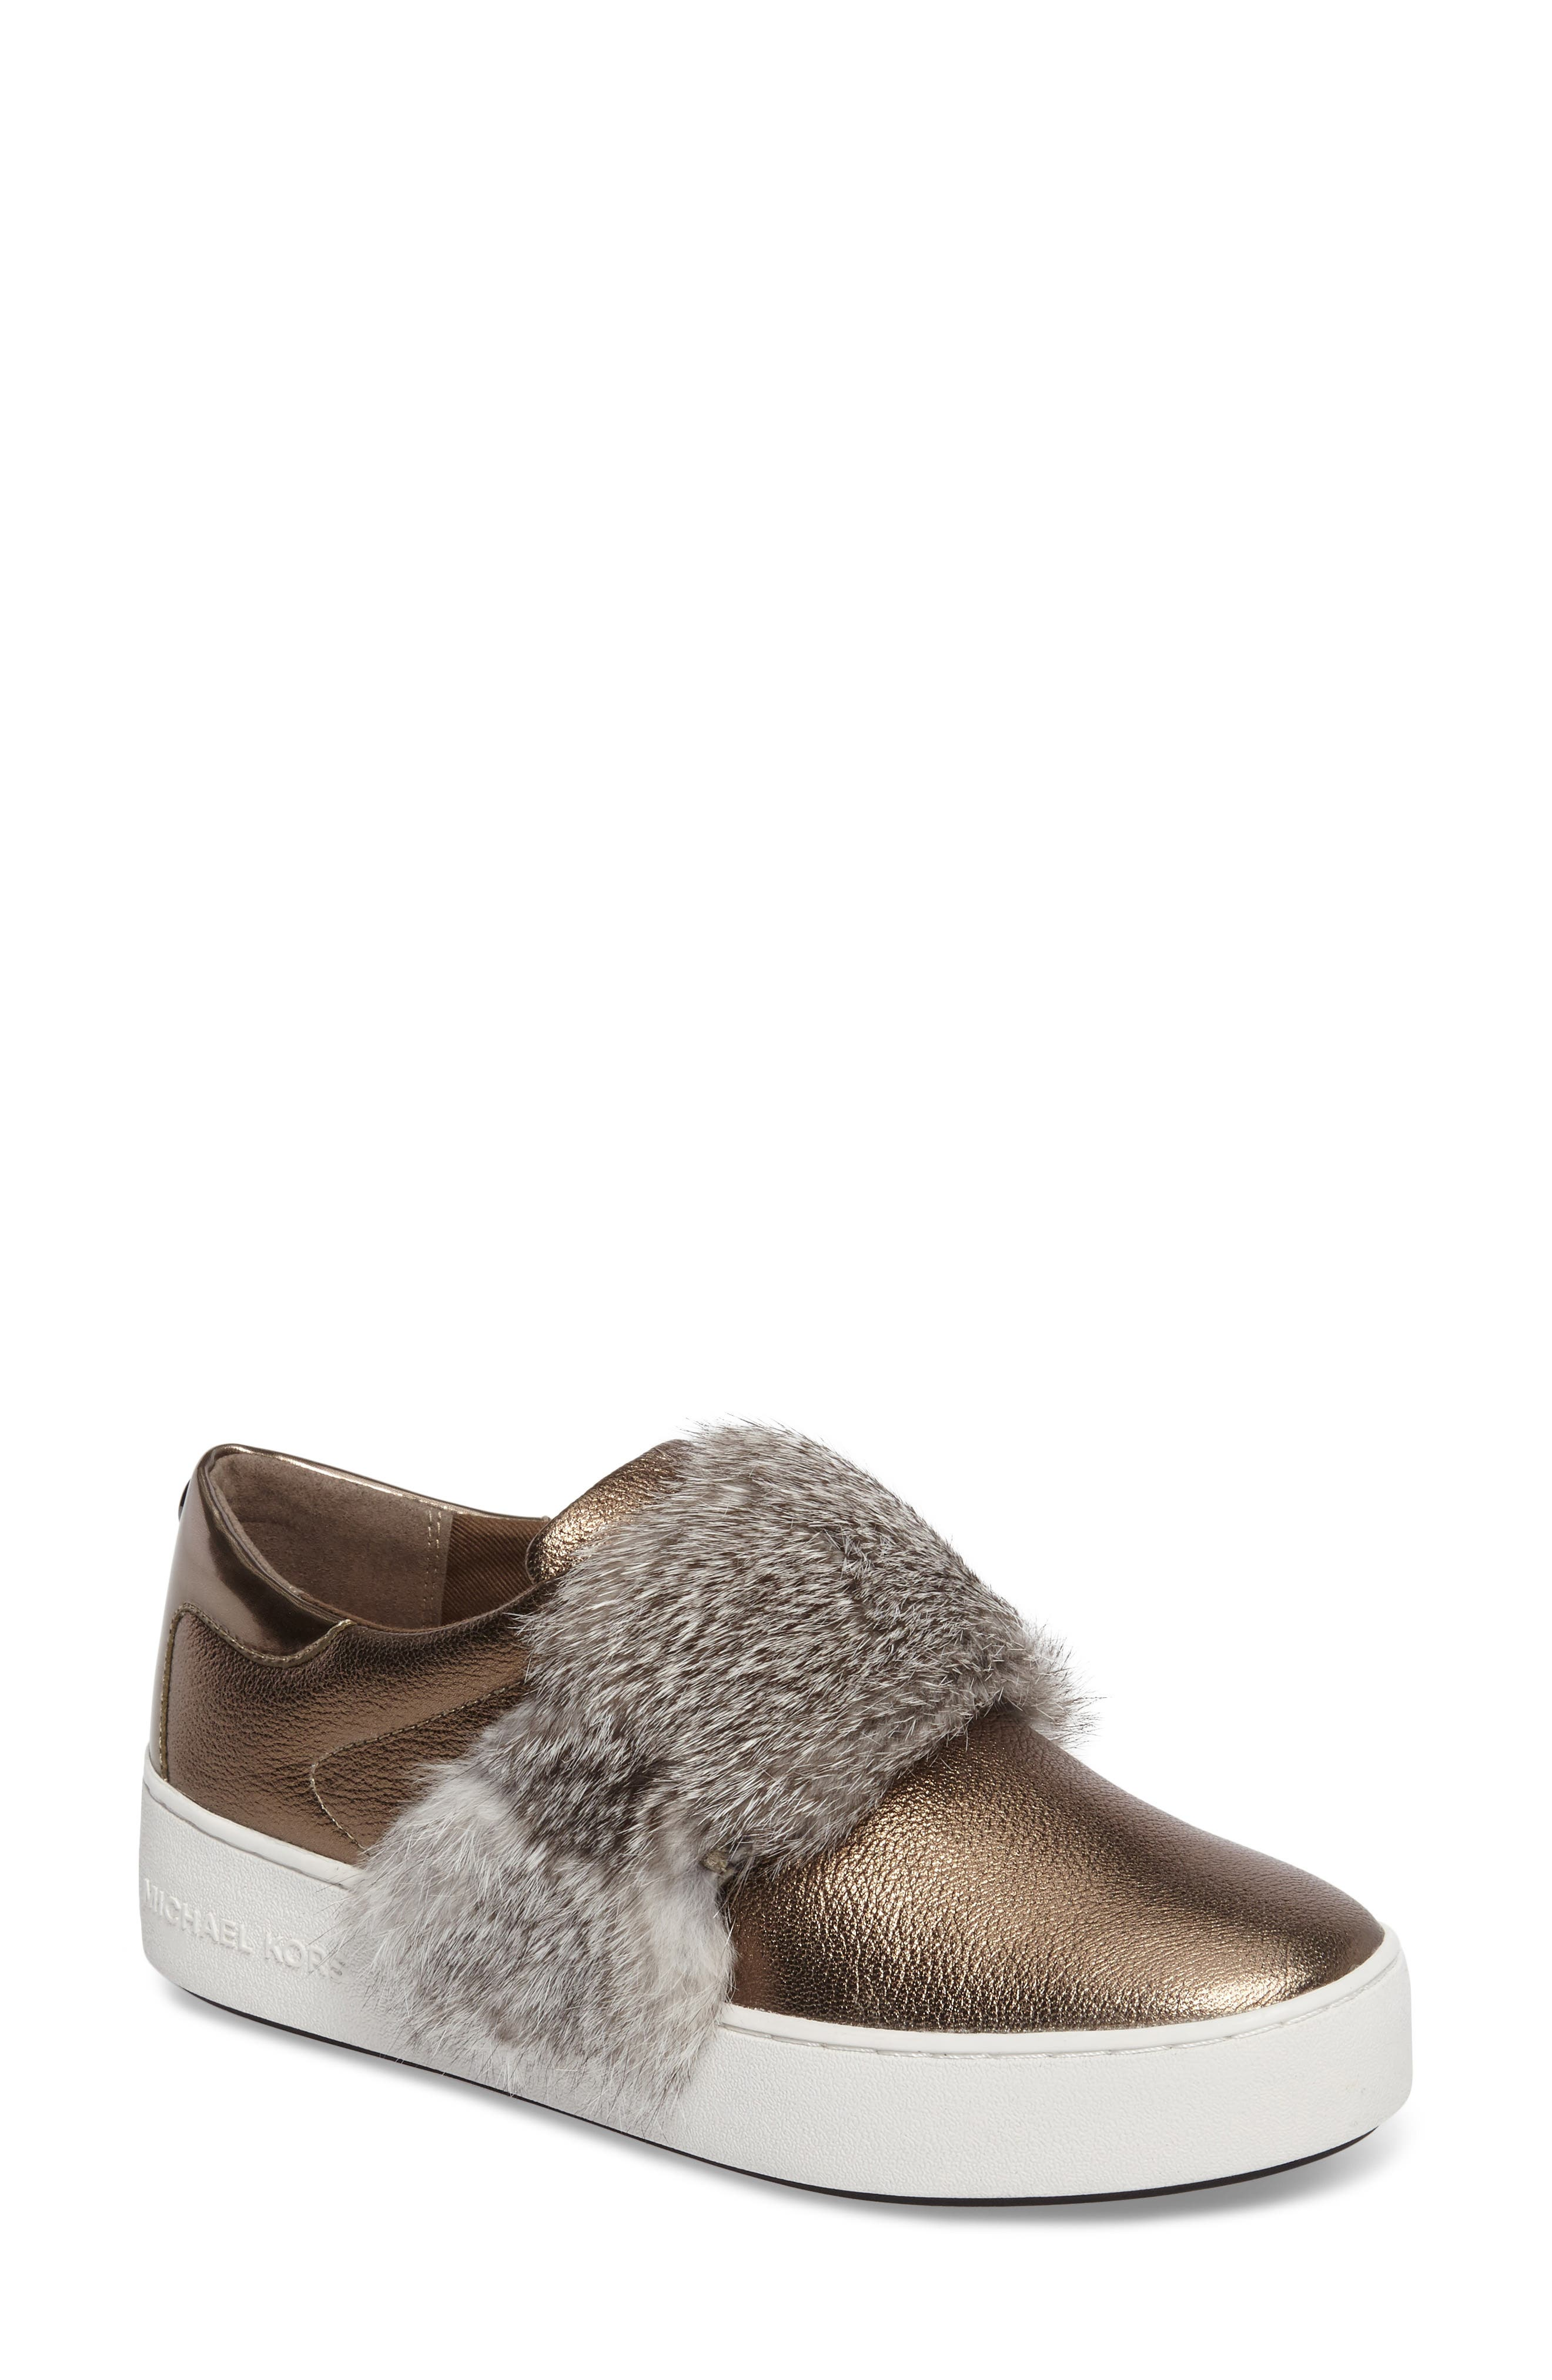 Alternate Image 1 Selected - MICHAEL Michael Kors Maven Genuine Rabbit Fur Sneaker (Women)